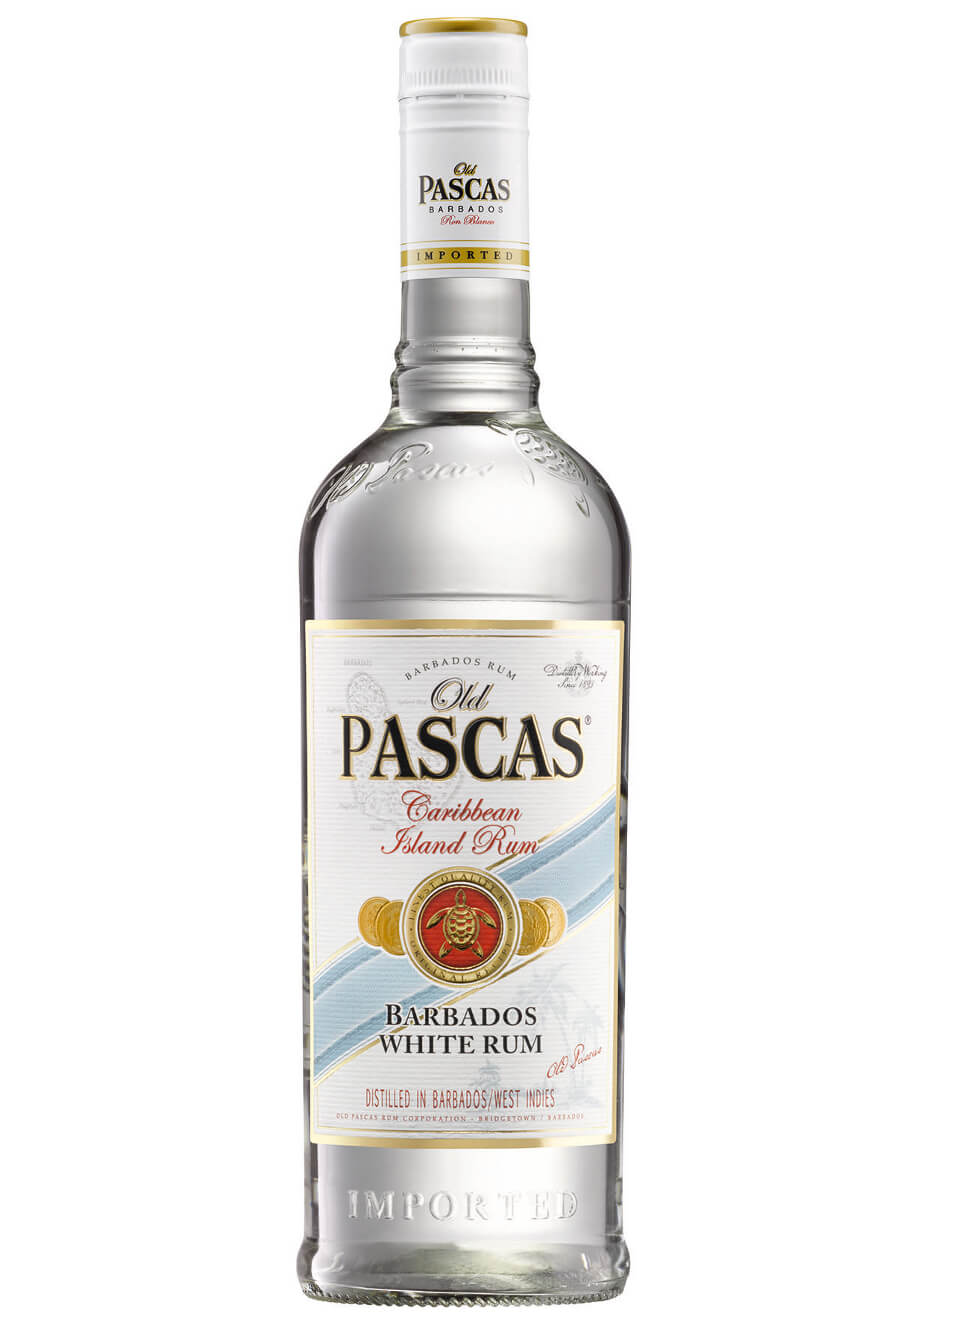 Old Pascas Barbados White Rum 1 L